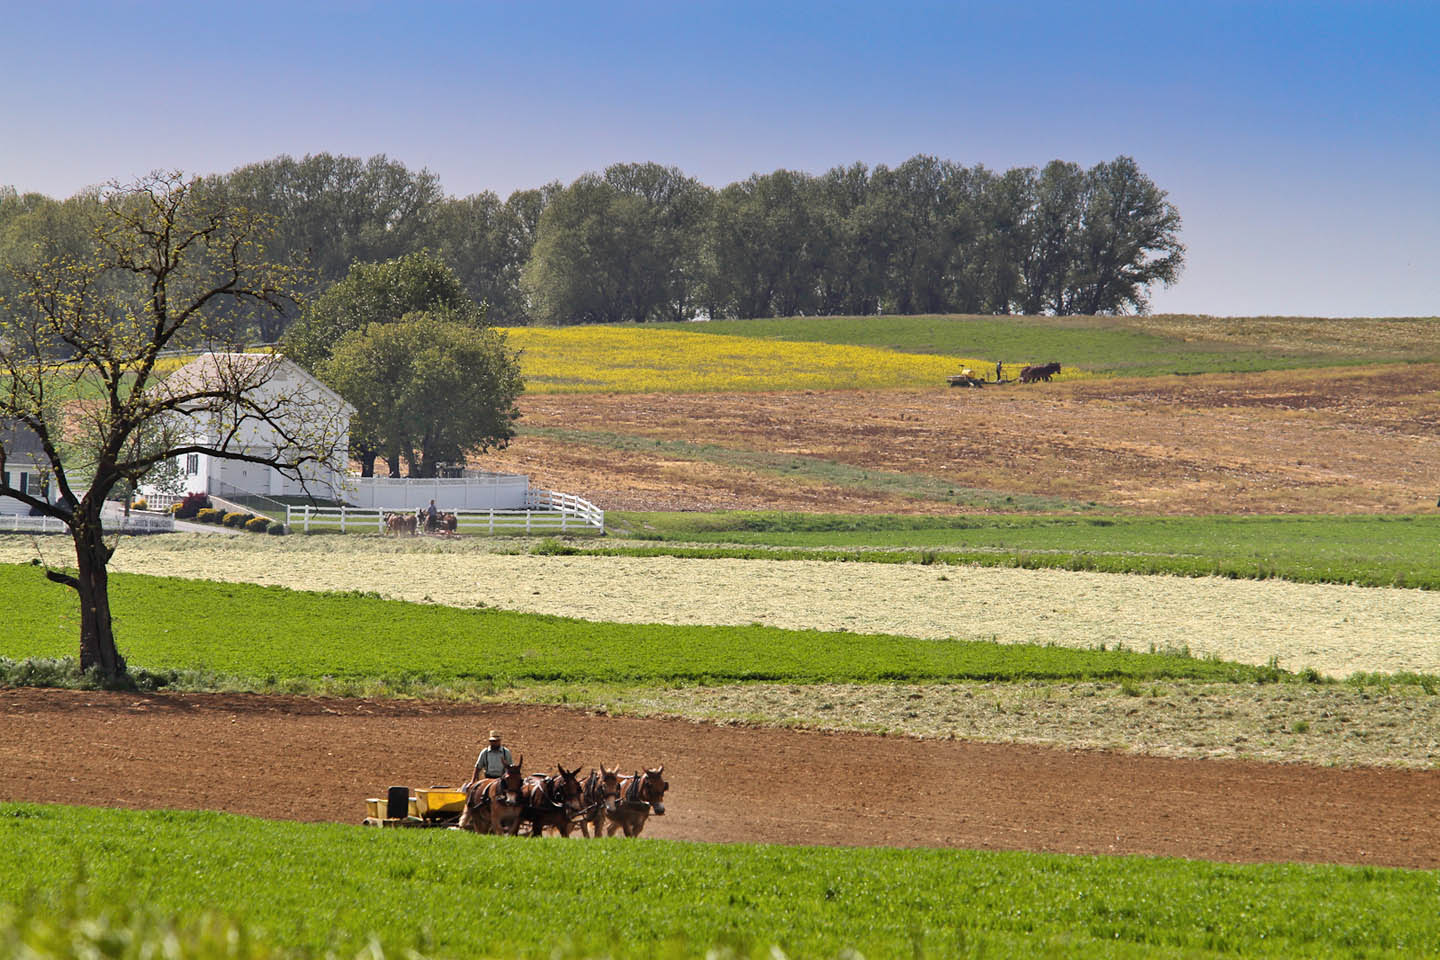 amish-country-farming-with-horses-etc-42-of-56